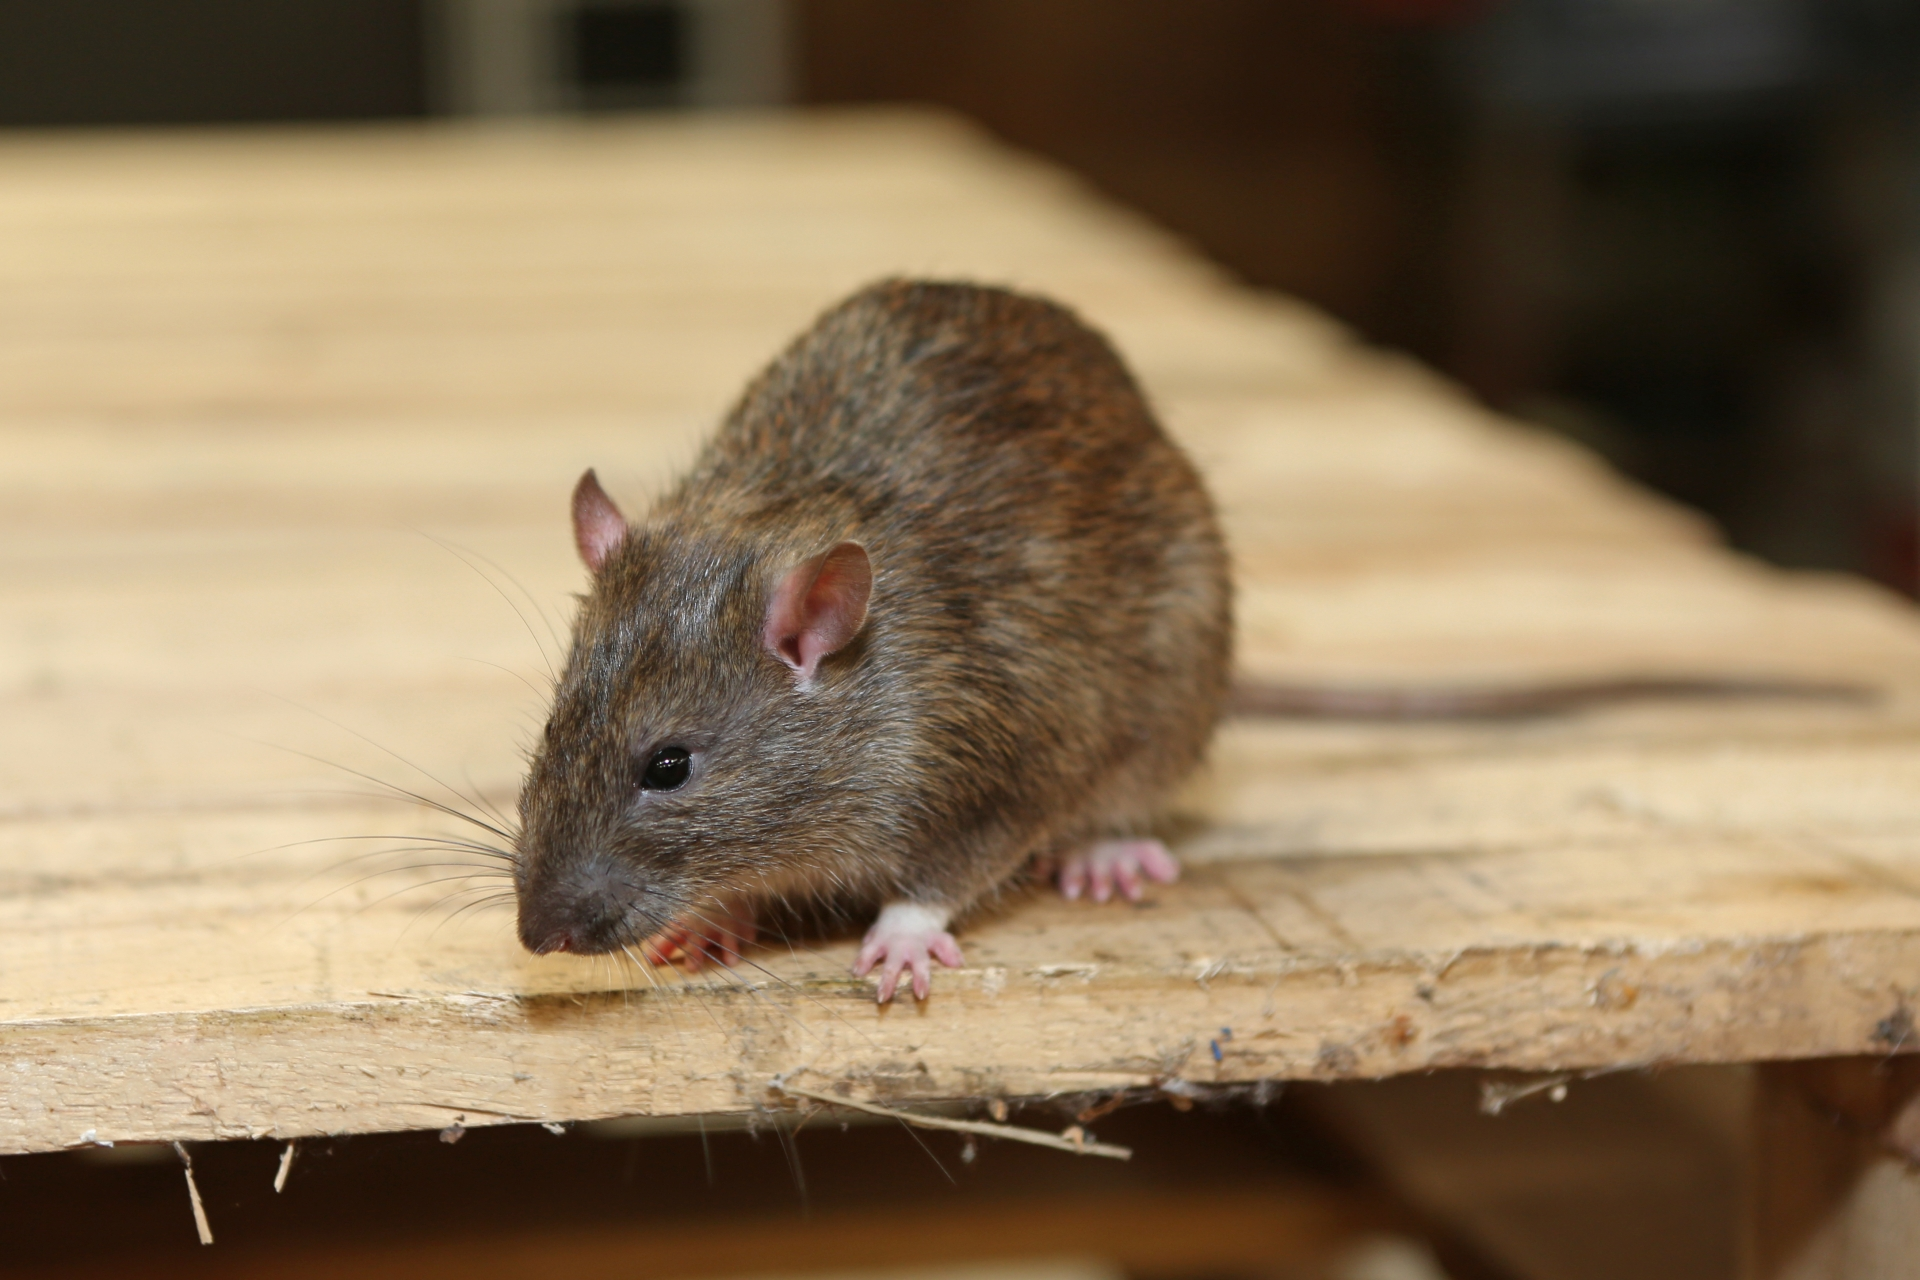 Rat Infestation, Pest Control in West Watford, Holywell, WD18. Call Now 020 8166 9746